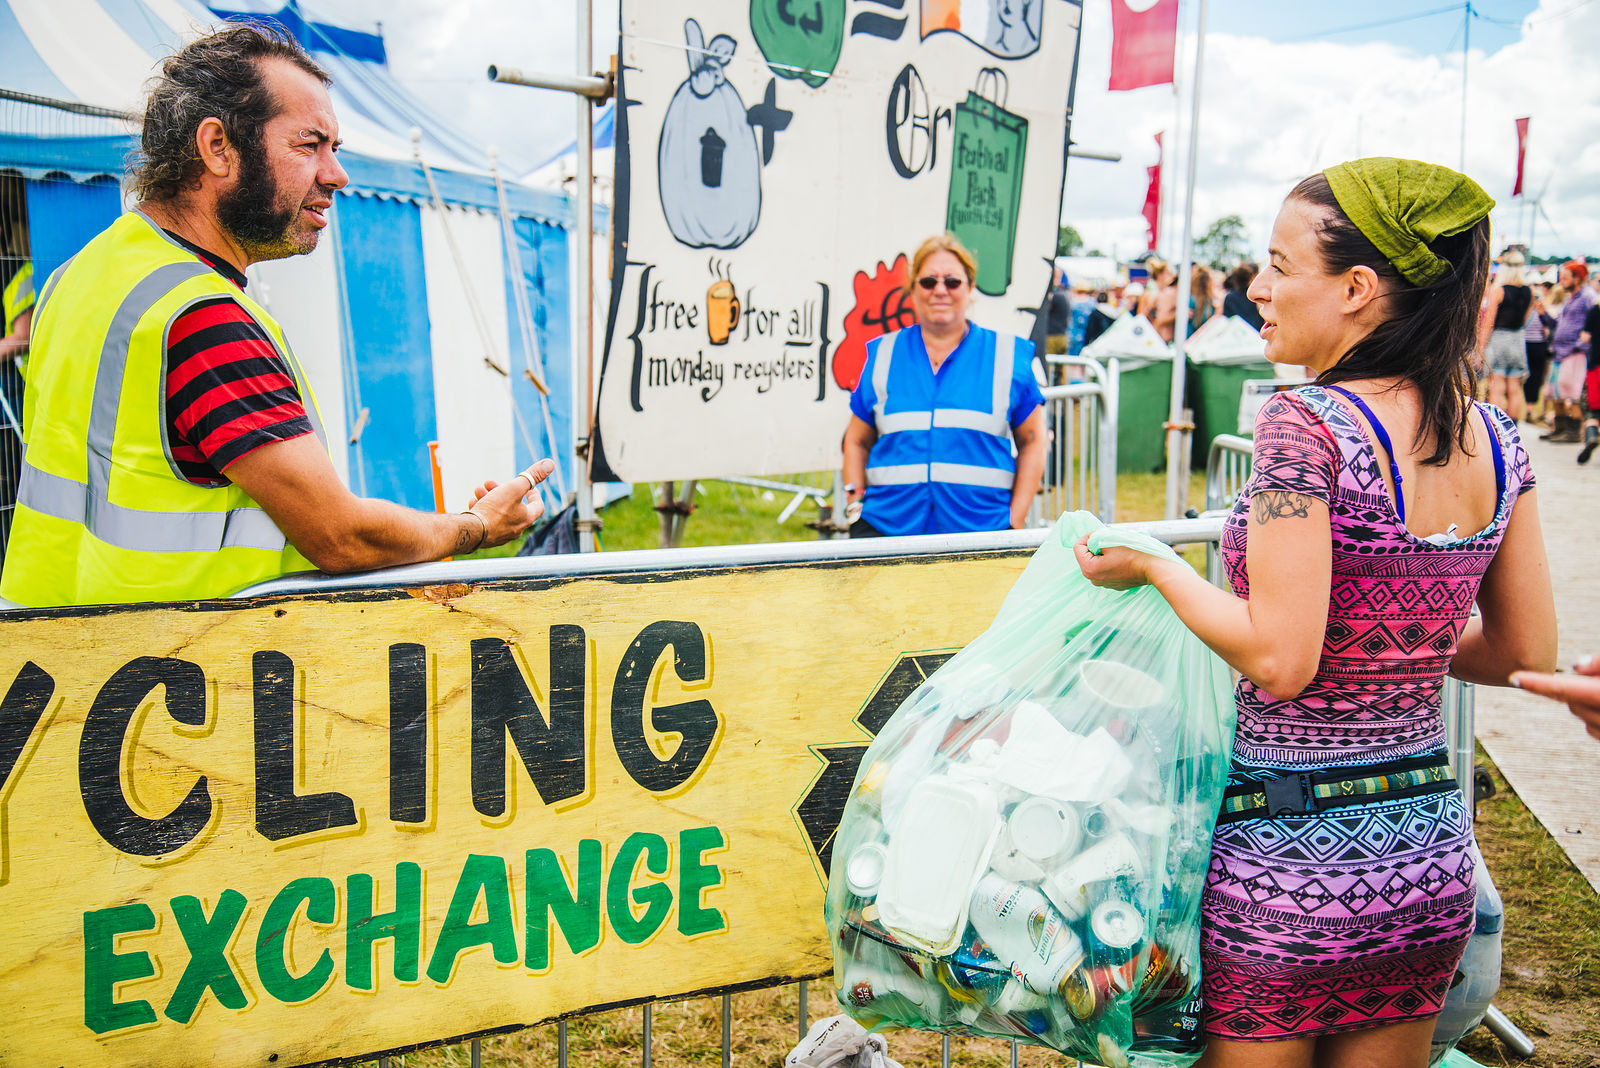 Recycling Exchange